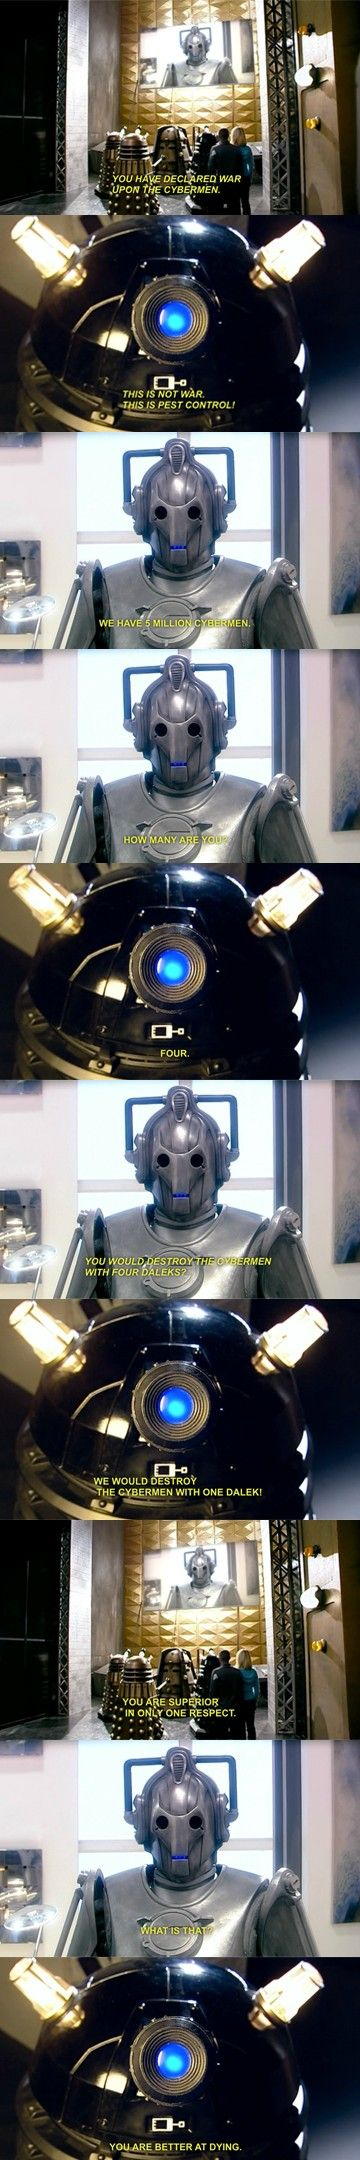 One Timelord > Four Daleks > Five Million Cybermen